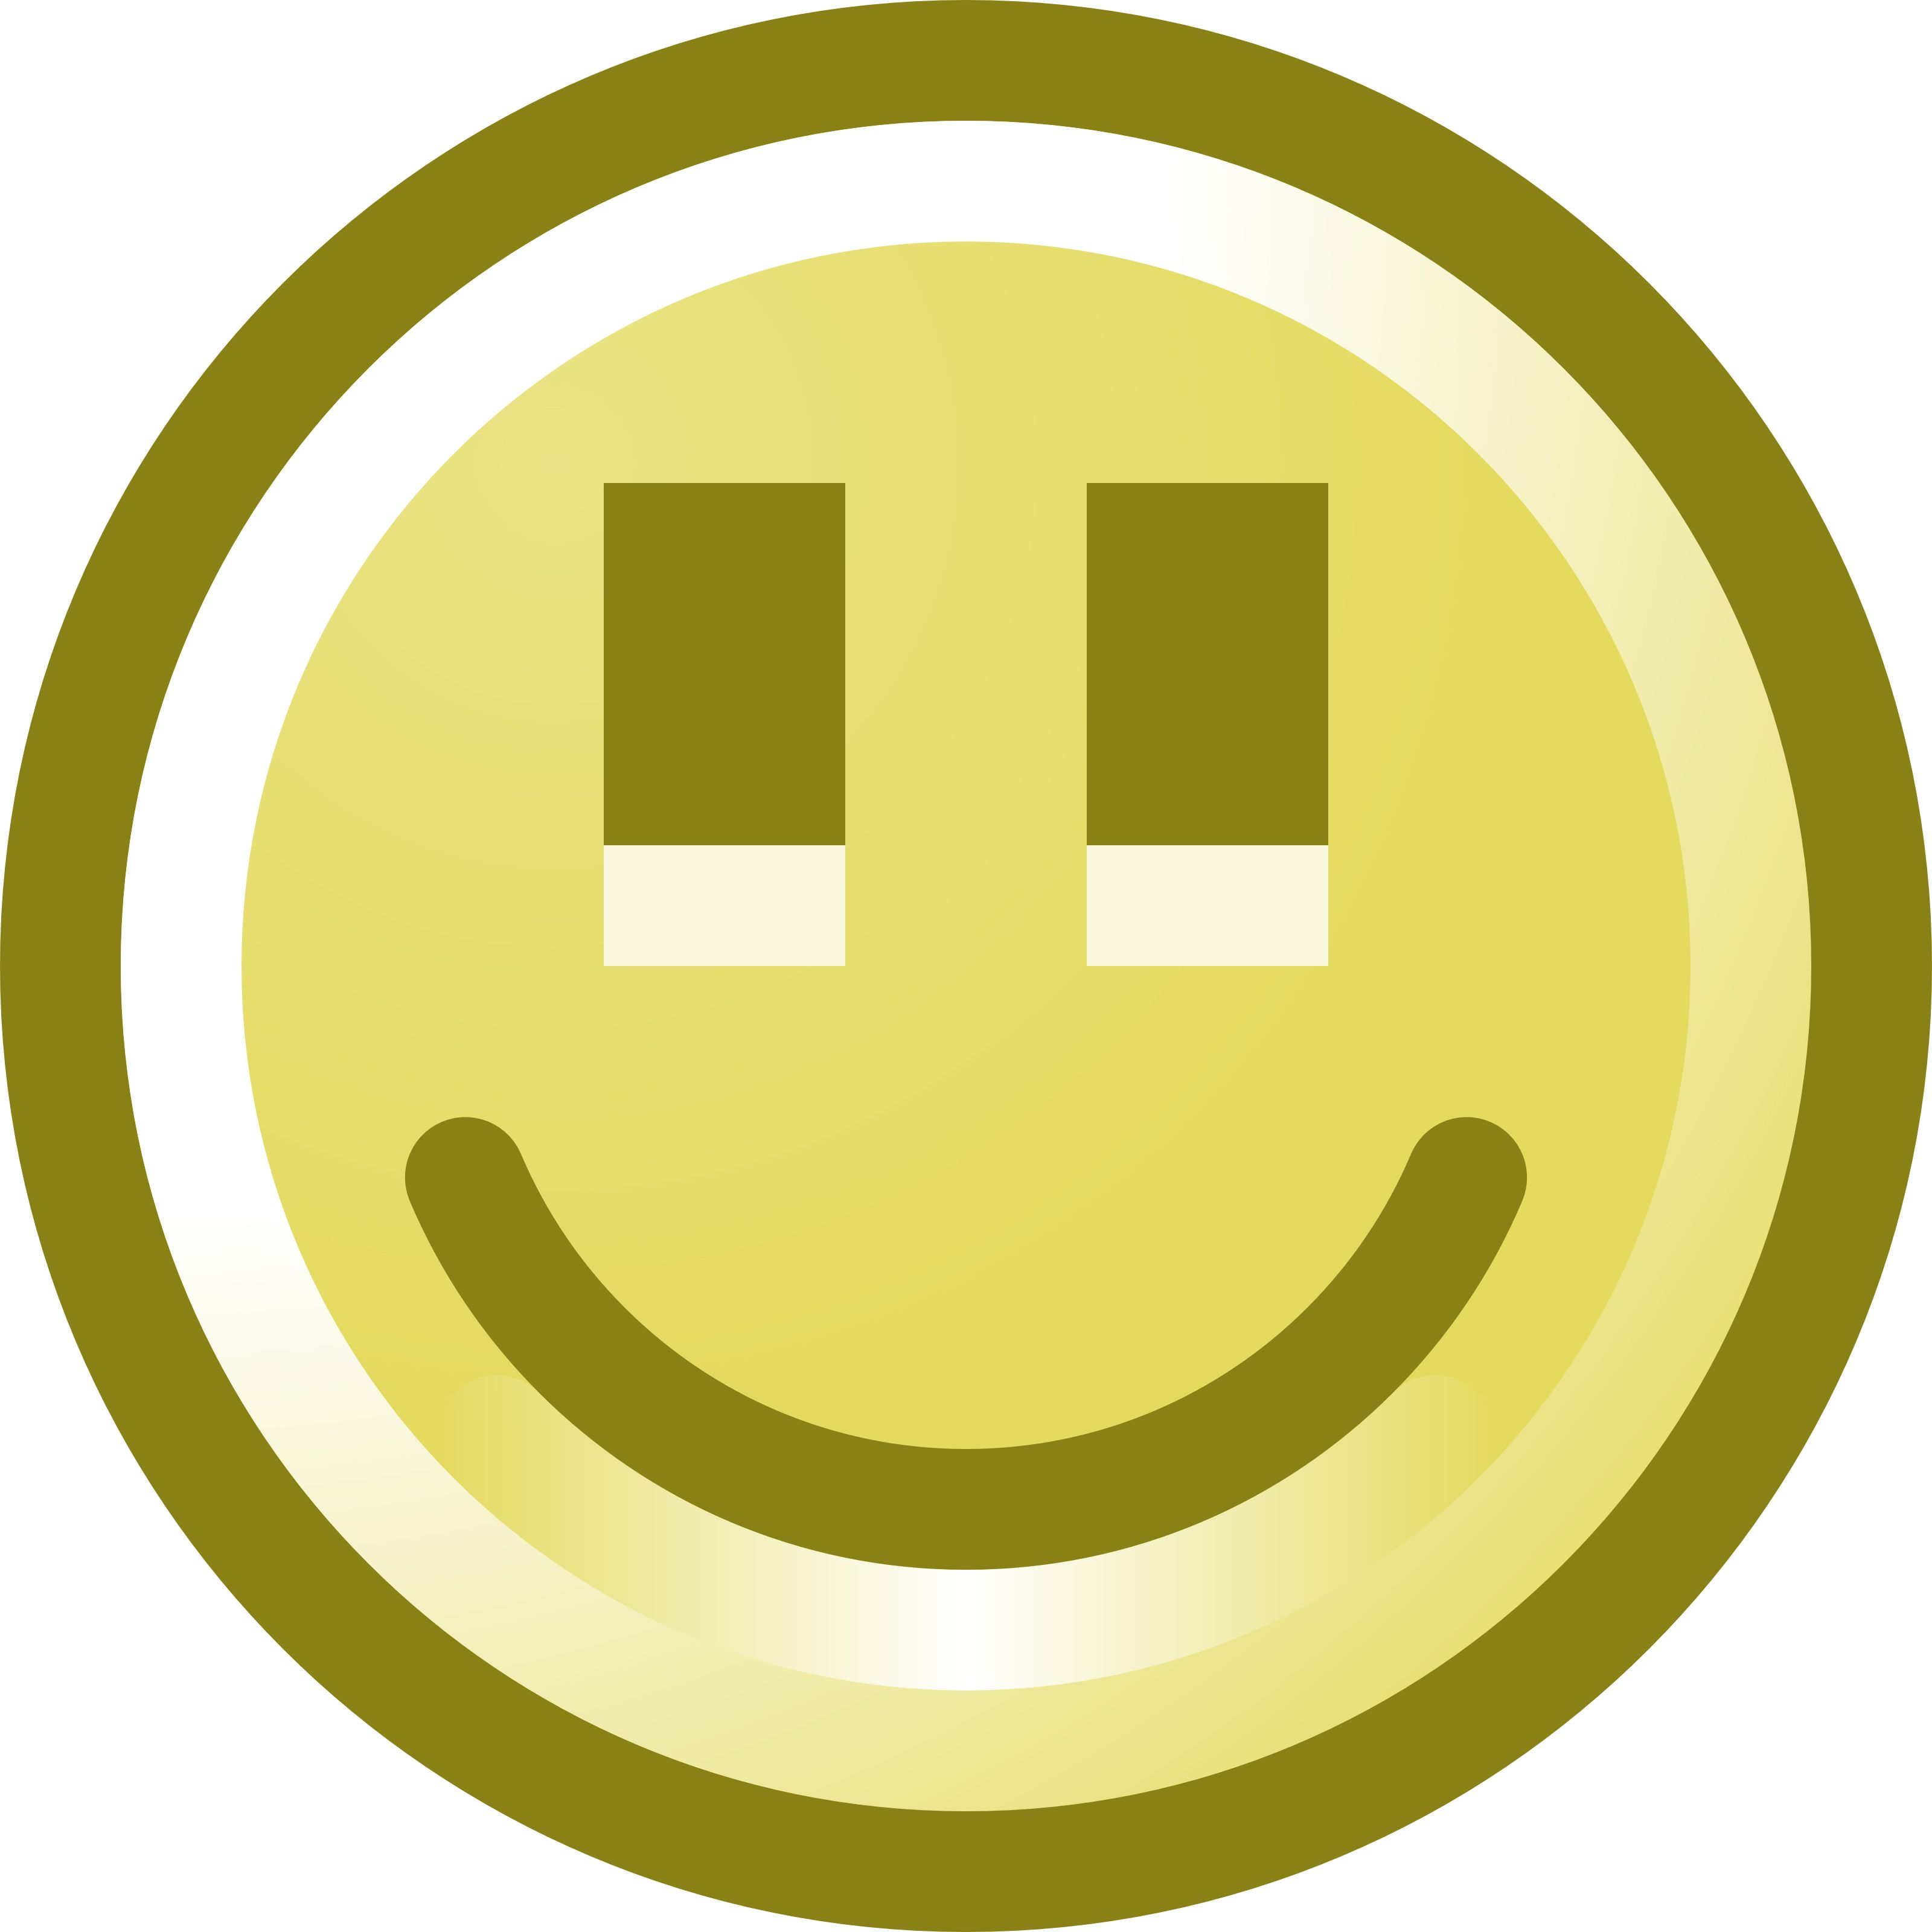 Free Smiling Smiley Face Clip.